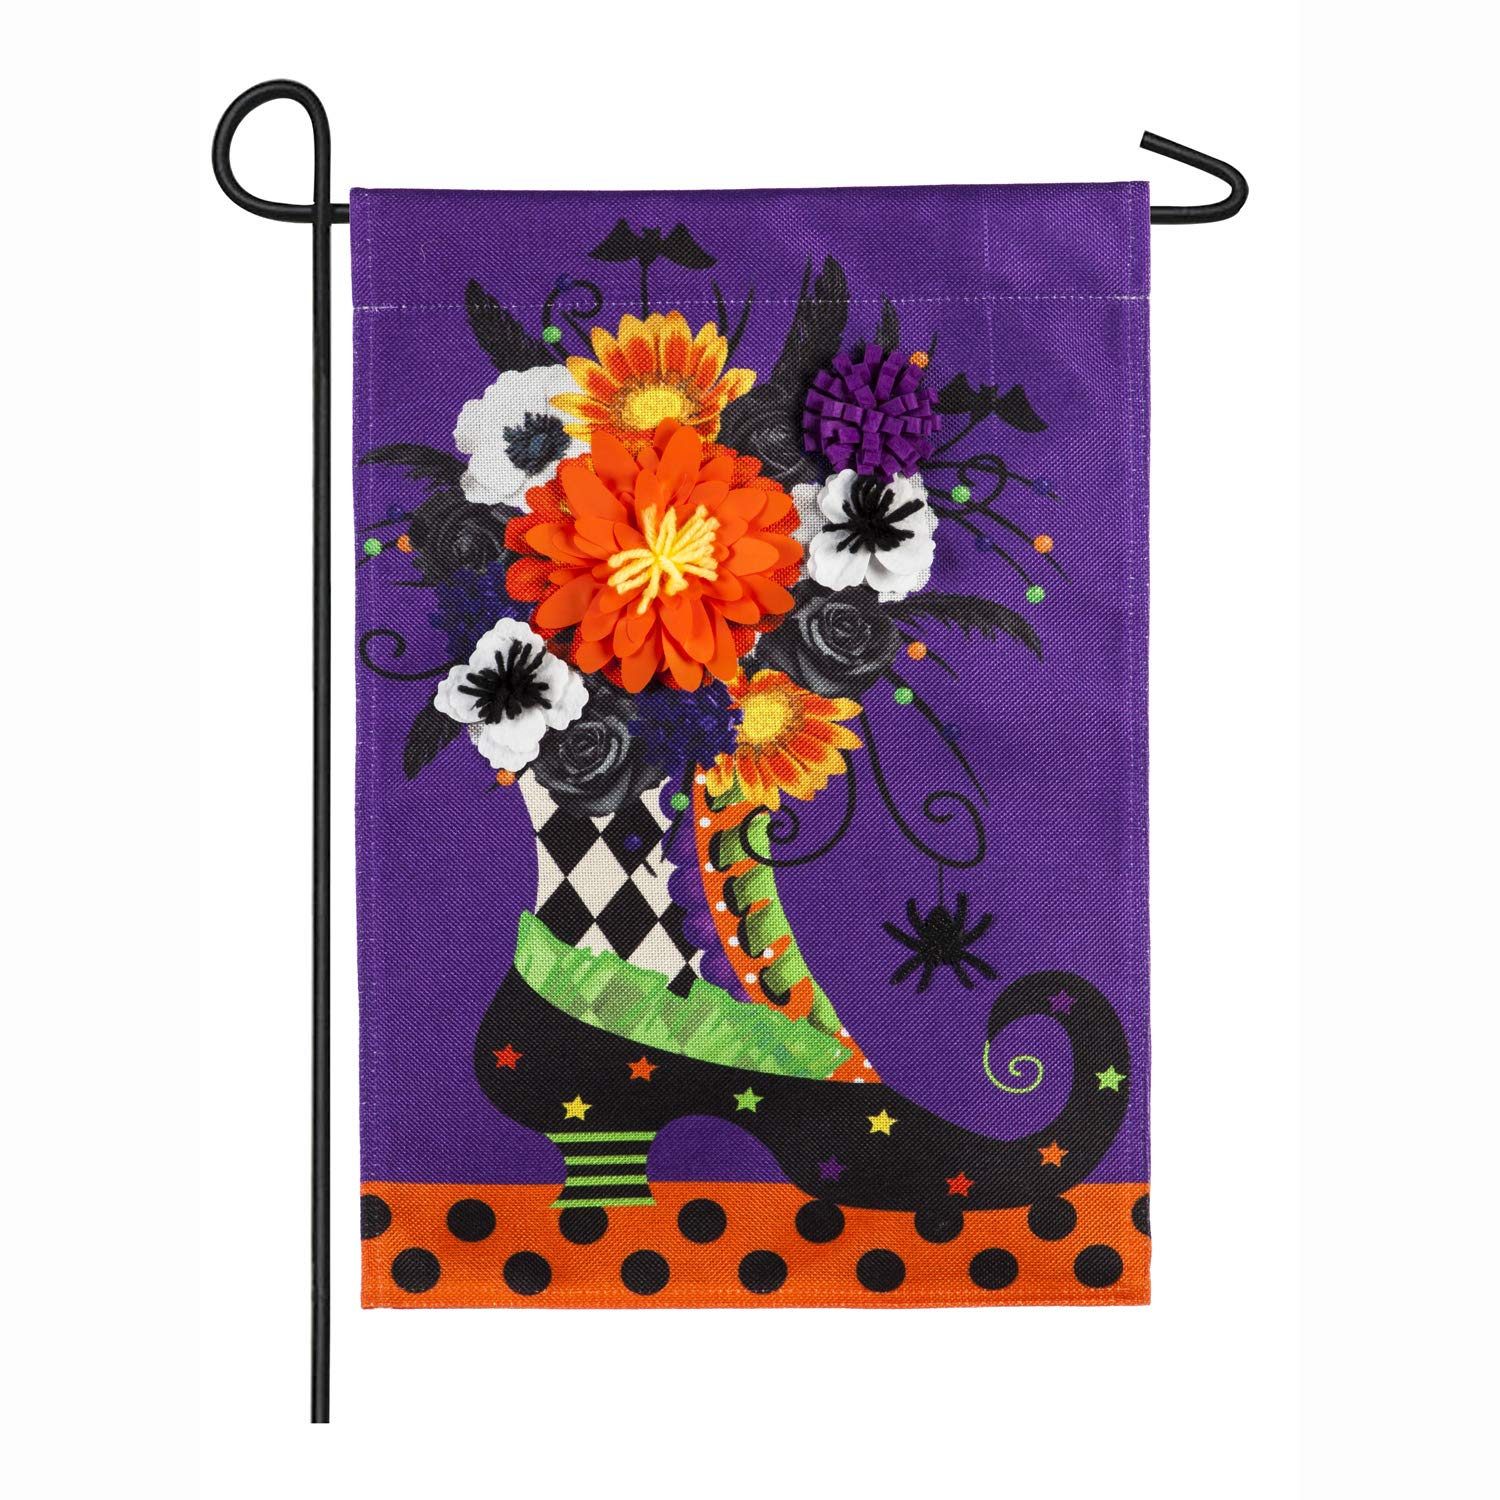 Evergreen Flag Witch Boot Halloween Outdoor Burlap Garden Flag, 12.5 x 18 inches